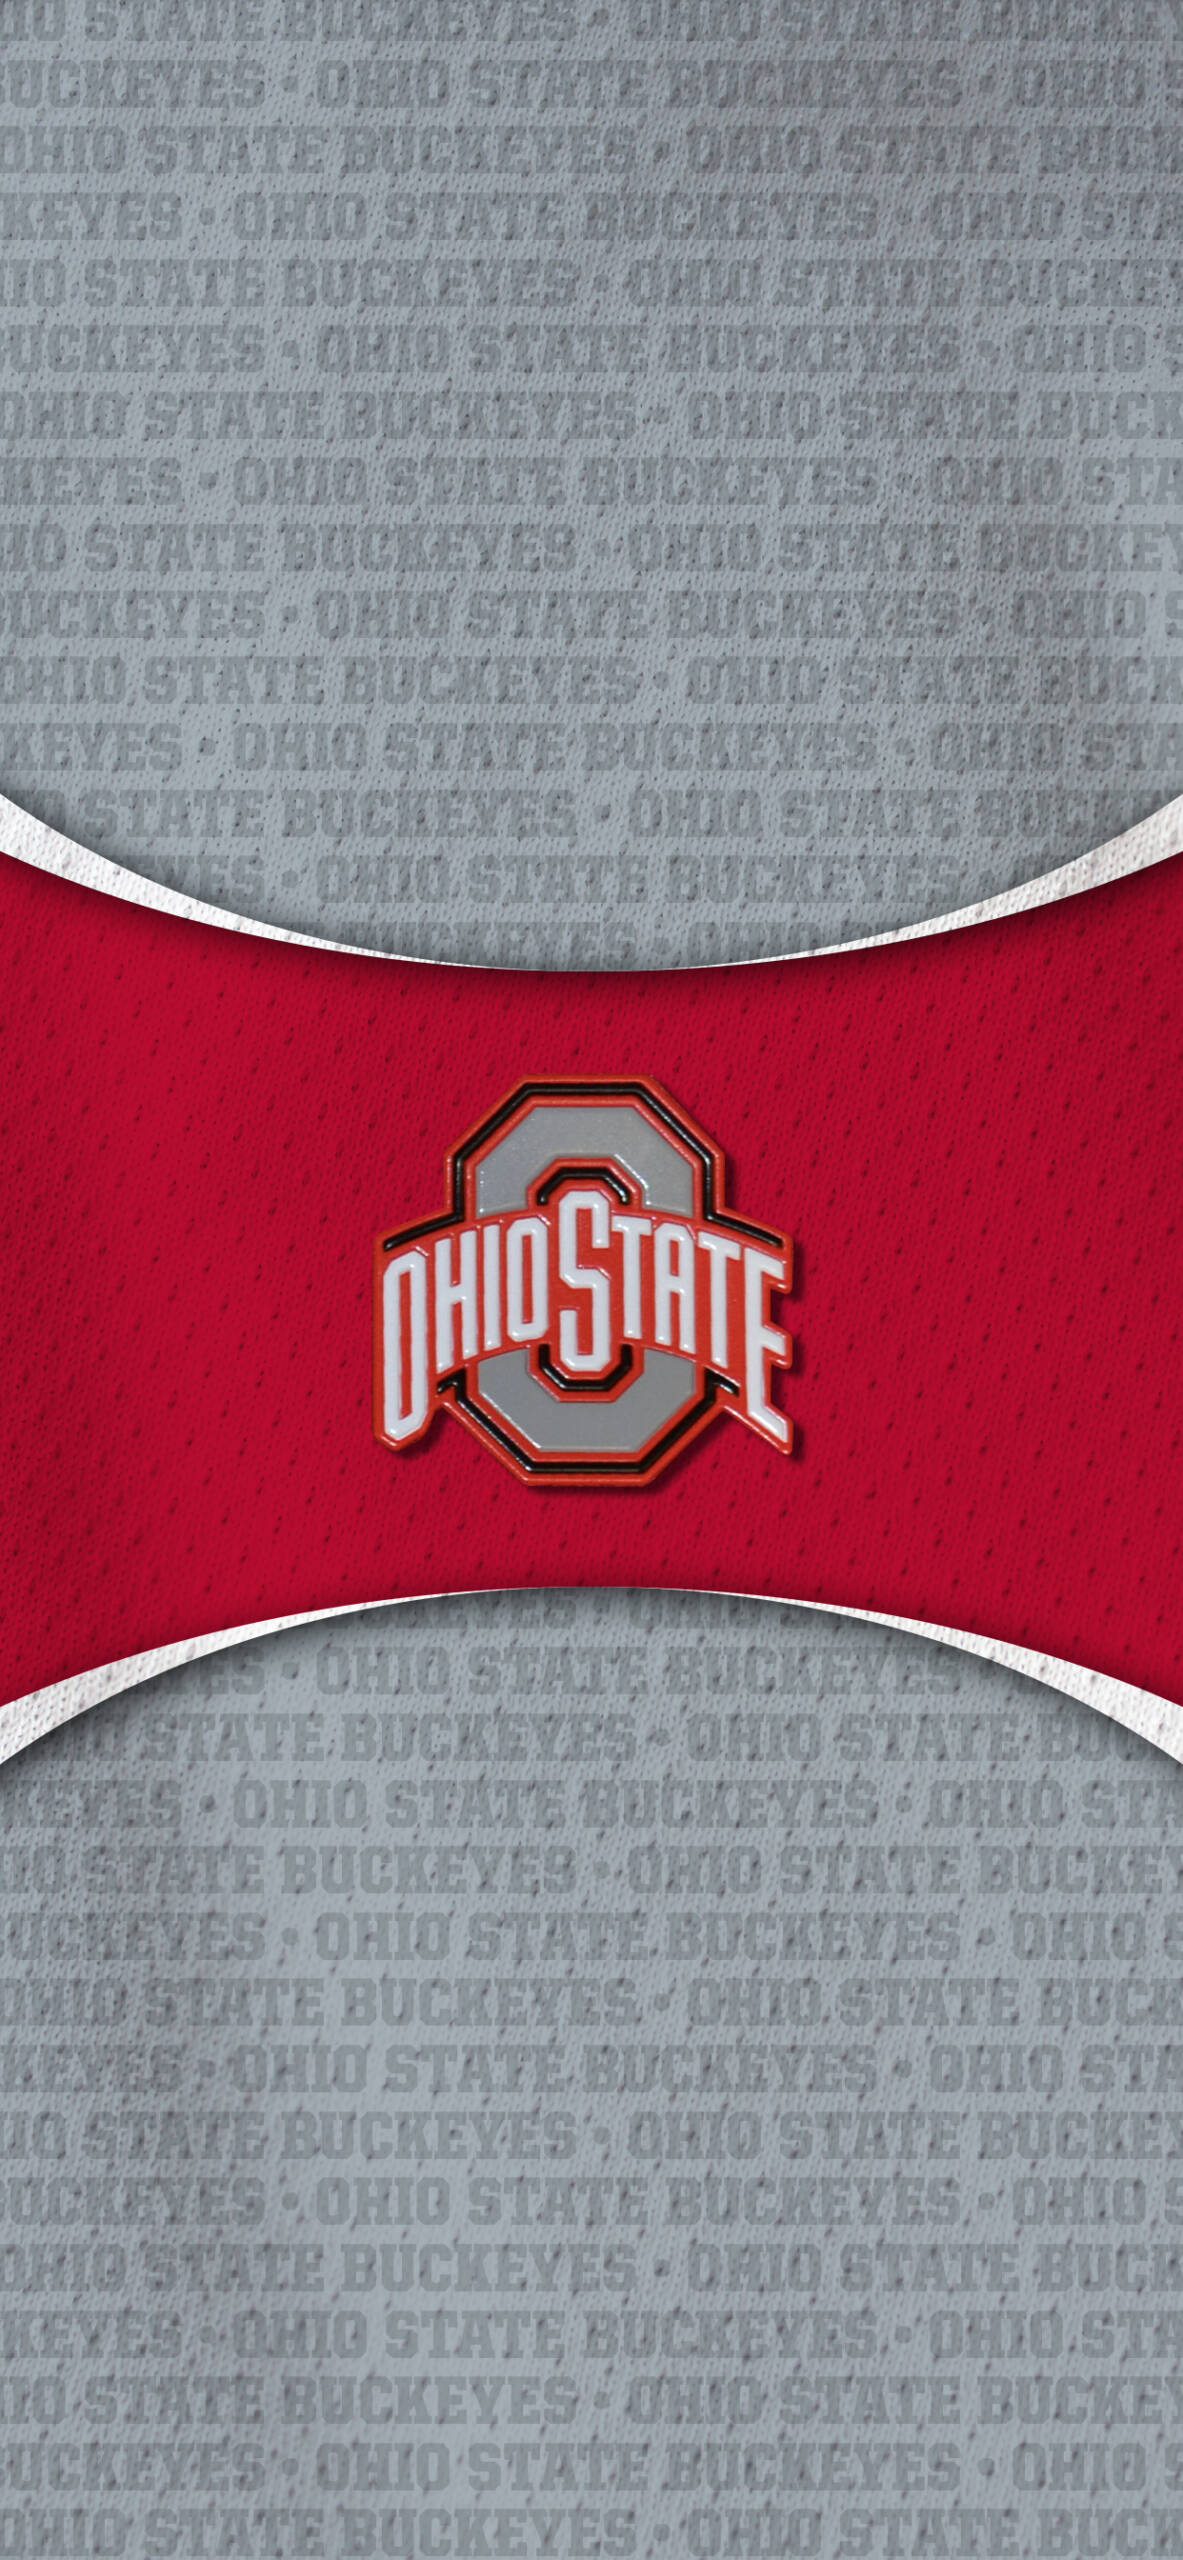 Wallpapers And Schedule Posters Ohio State Buckeyes